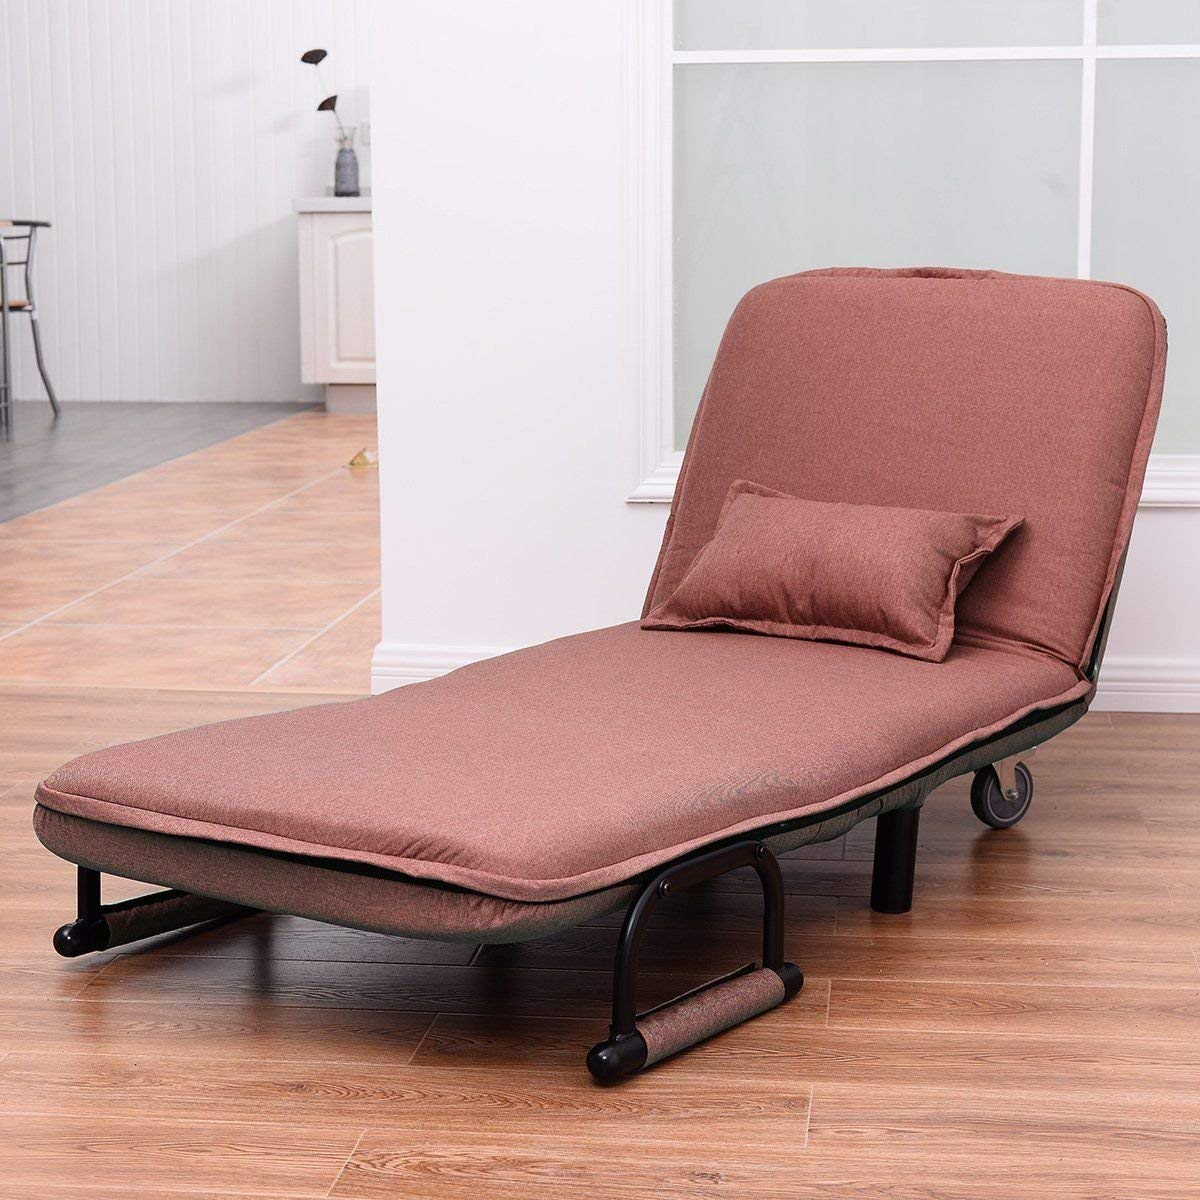 Cheap Convertible Sofa Chair Bed, find Convertible Sofa Chair Bed ...